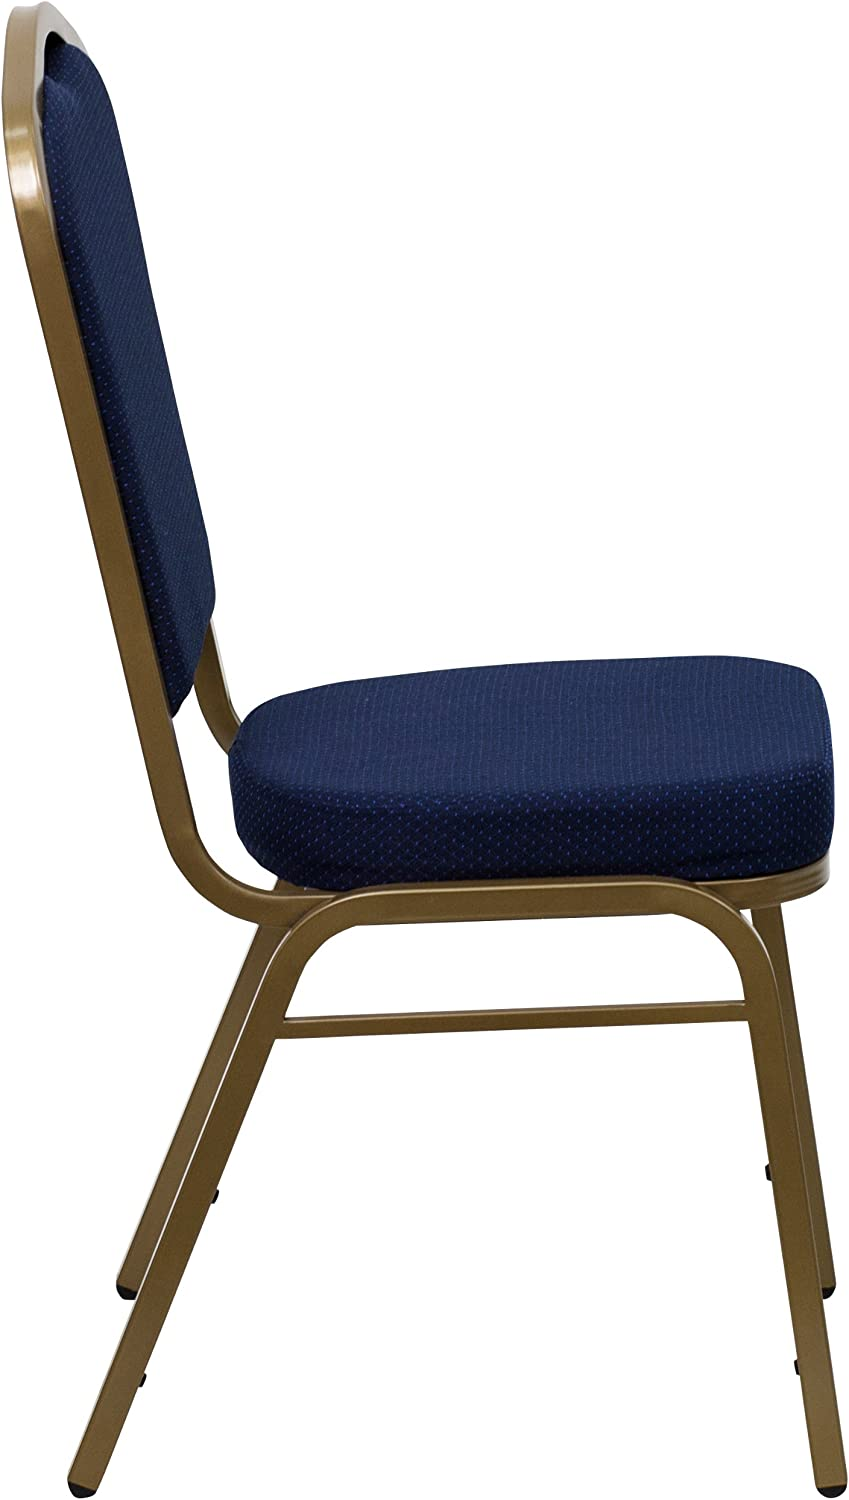 Flash Furniture 4 Pack HERCULES Series Crown Back Stacking Banquet Chair in Navy Blue Patterned Fabric Gold Frame